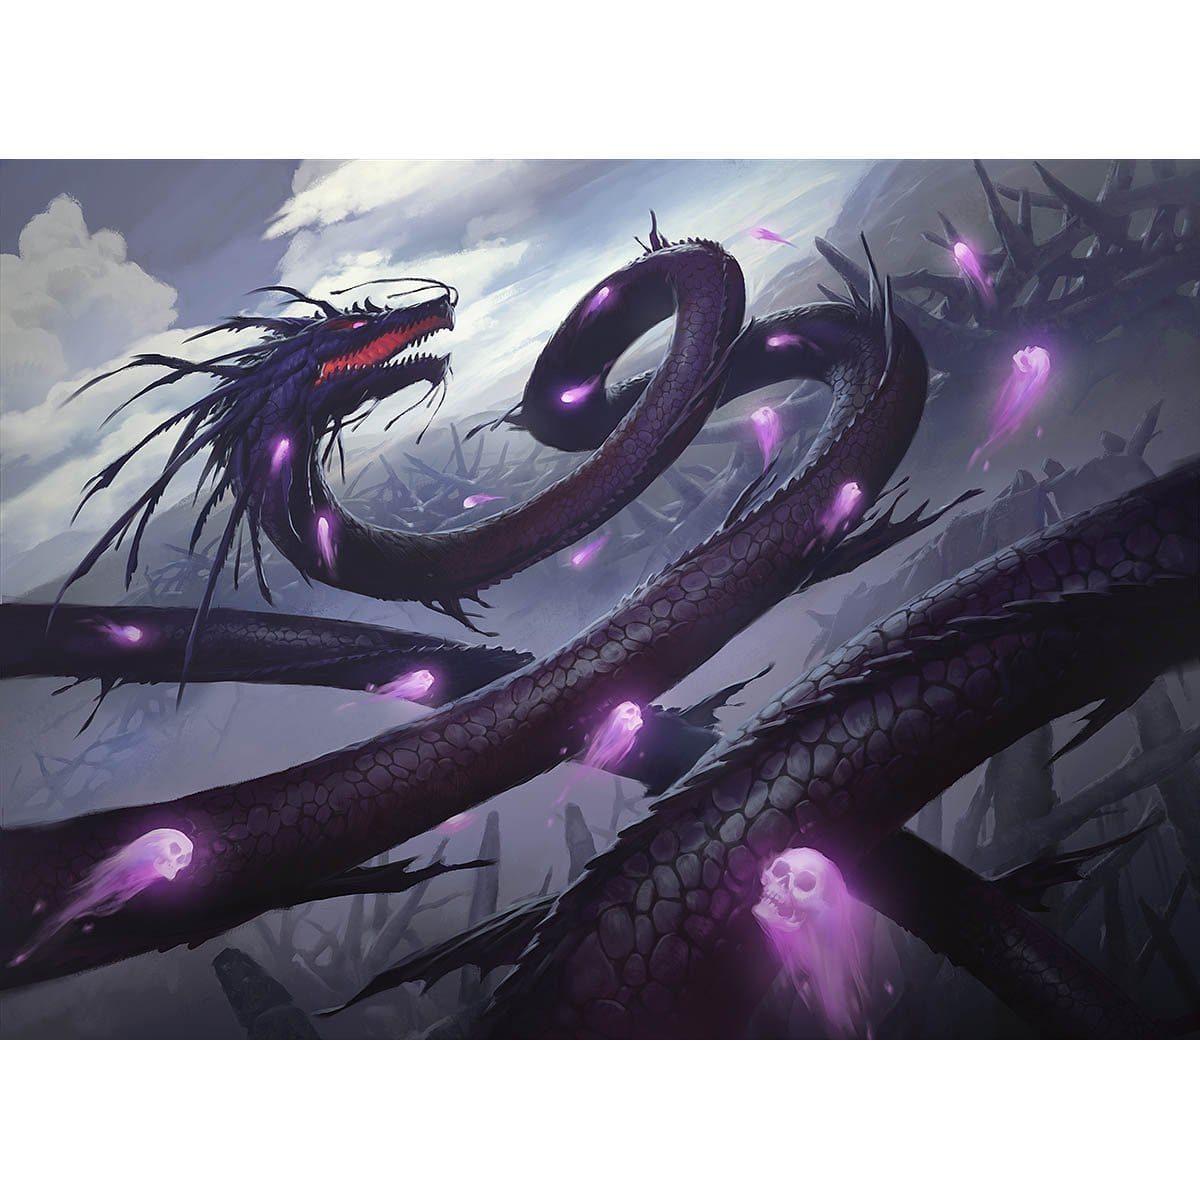 Kokusho, the Evening Star Print - Print - Original Magic Art - Accessories for Magic the Gathering and other card games